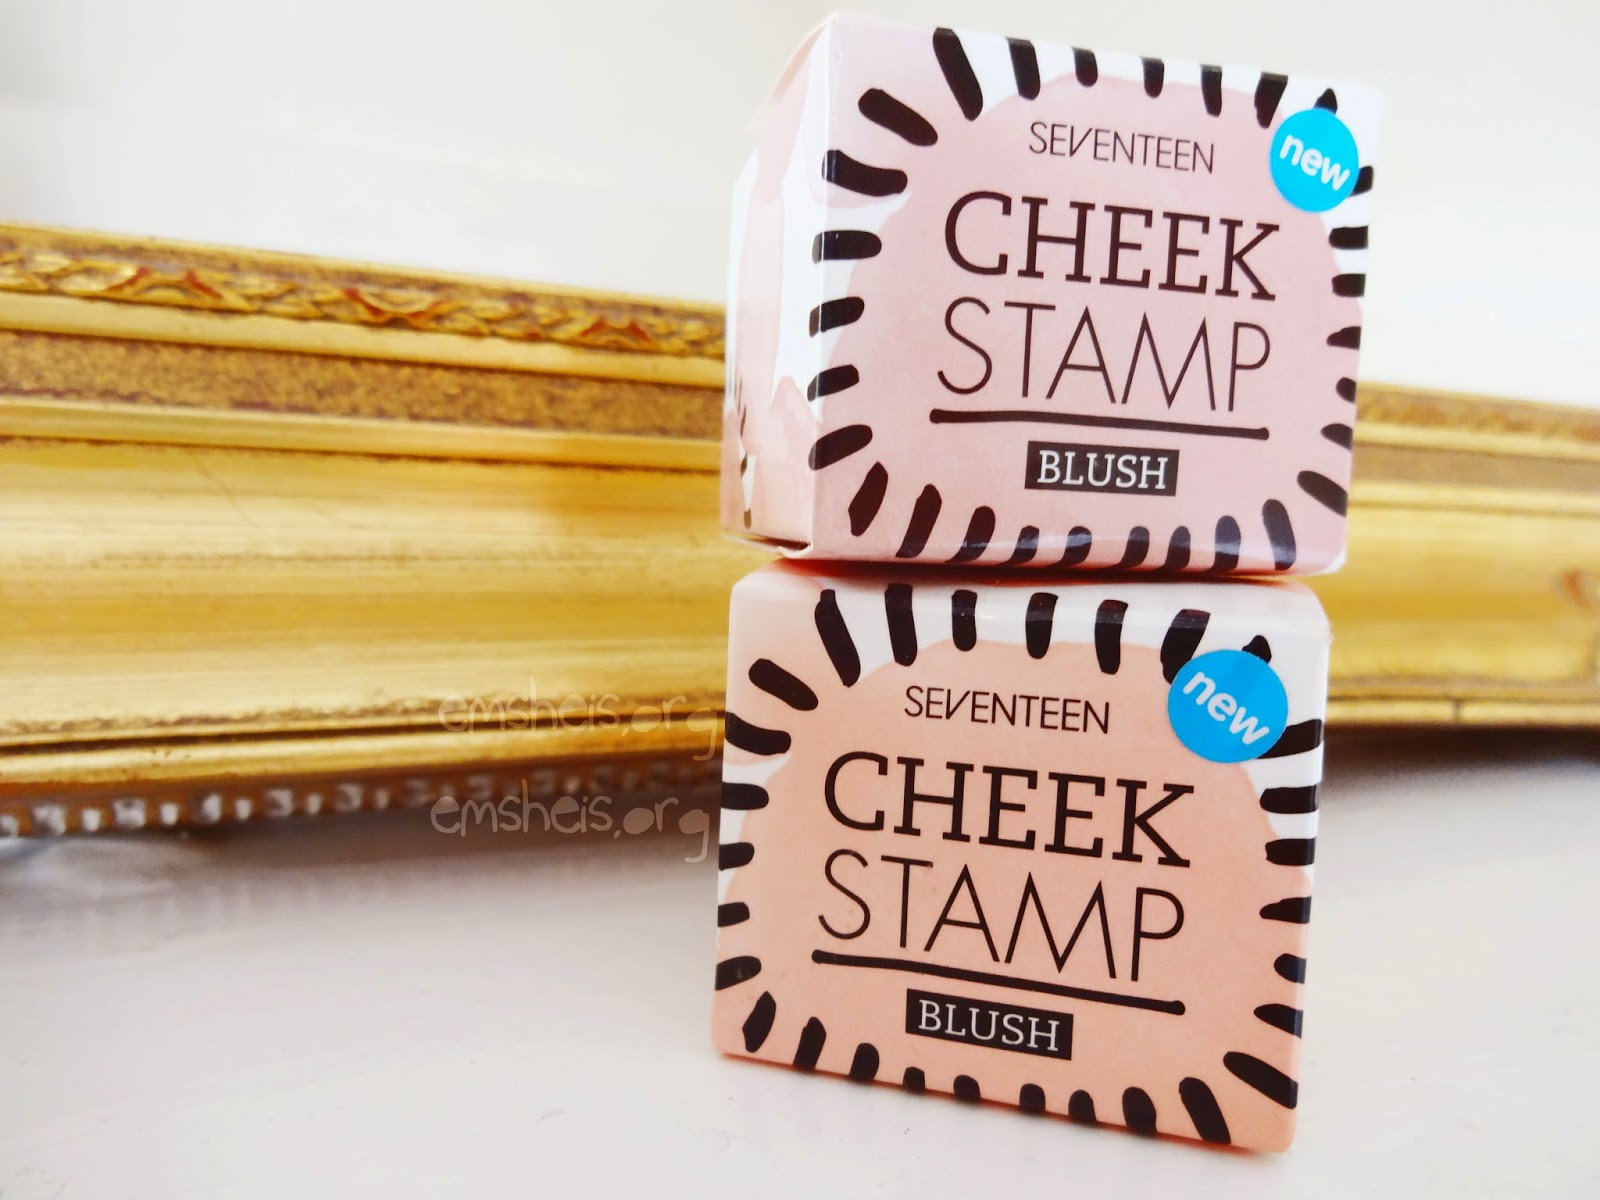 17 Cheek Stamp Blush